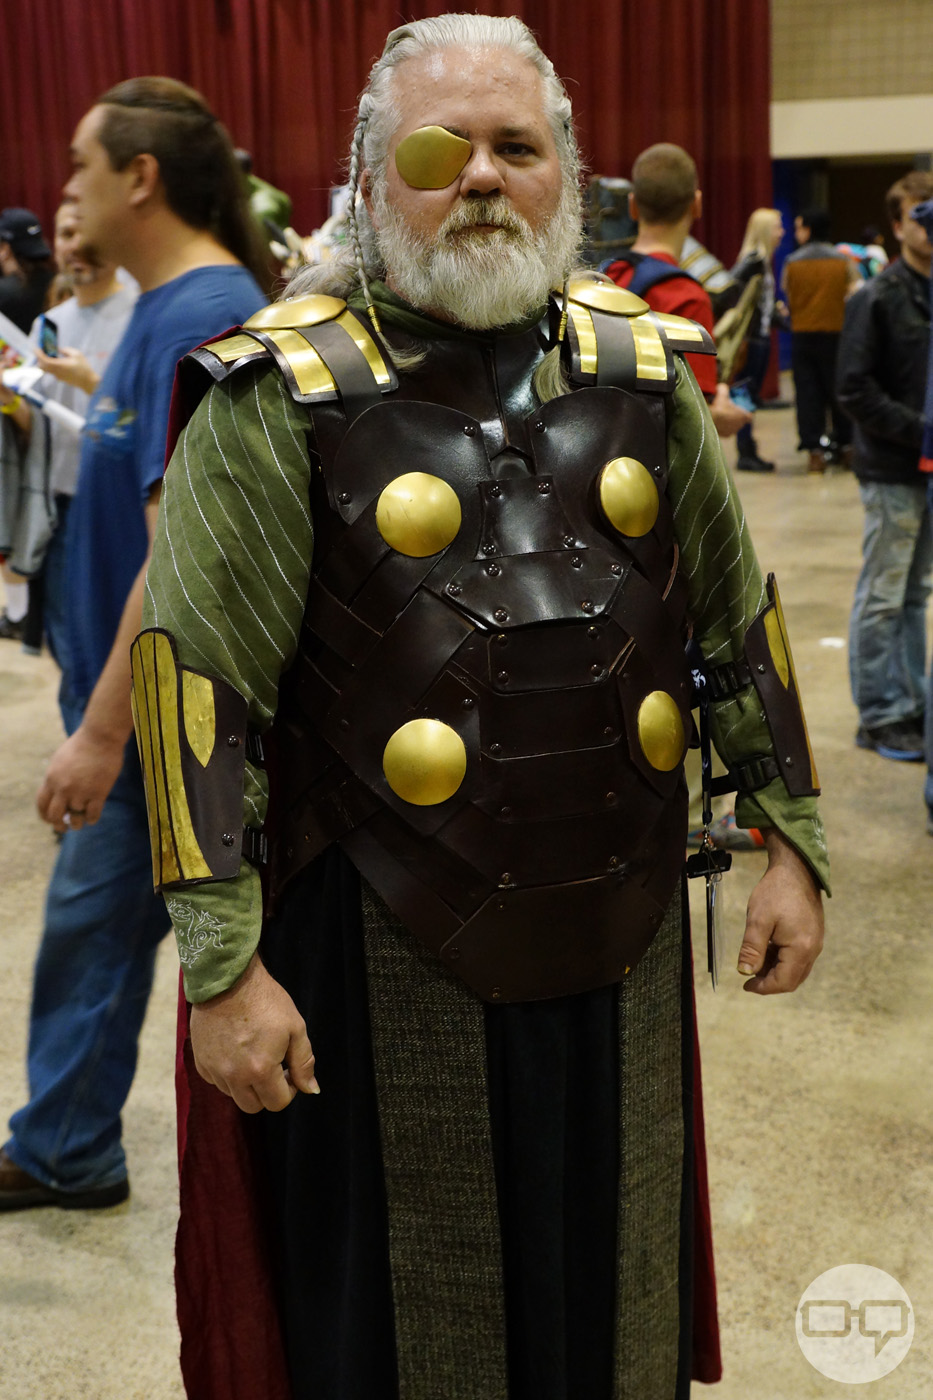 Planet-Comicon-2015-ProNerd-Cosplay-D1-15